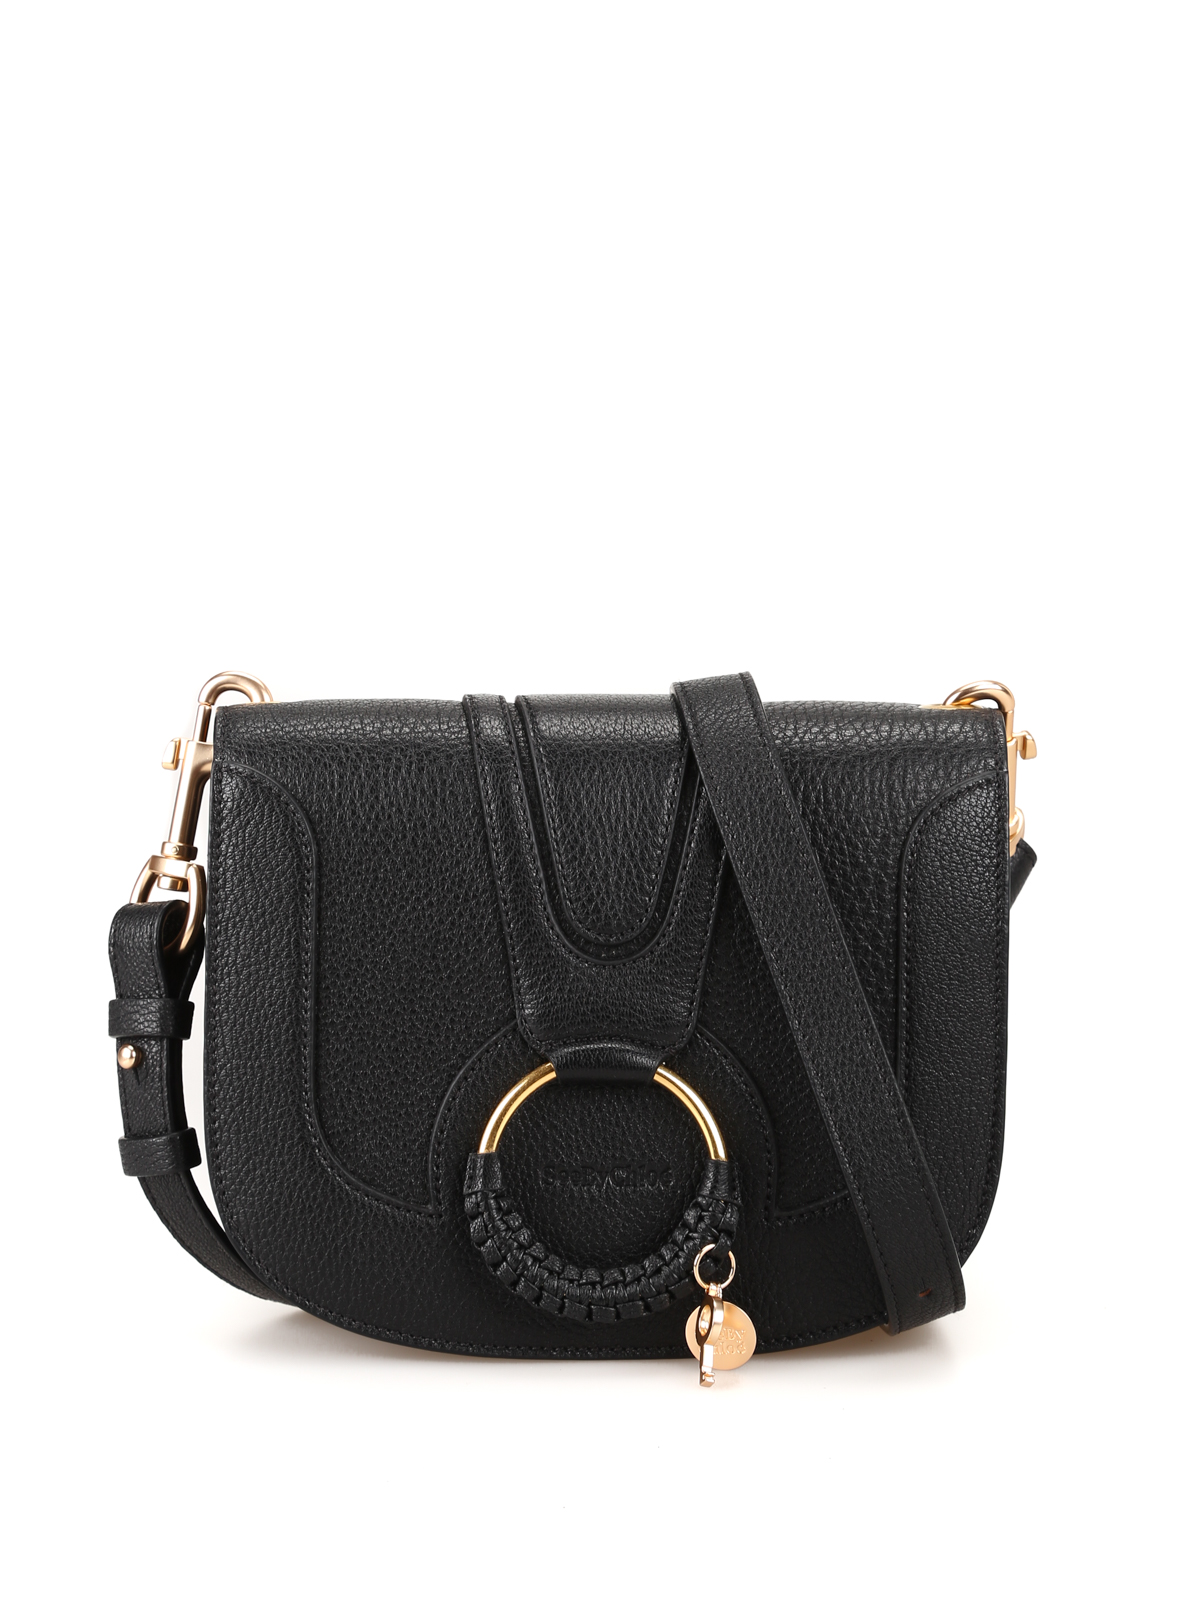 See By Chloé HANA GRAINED LEATHER BAG